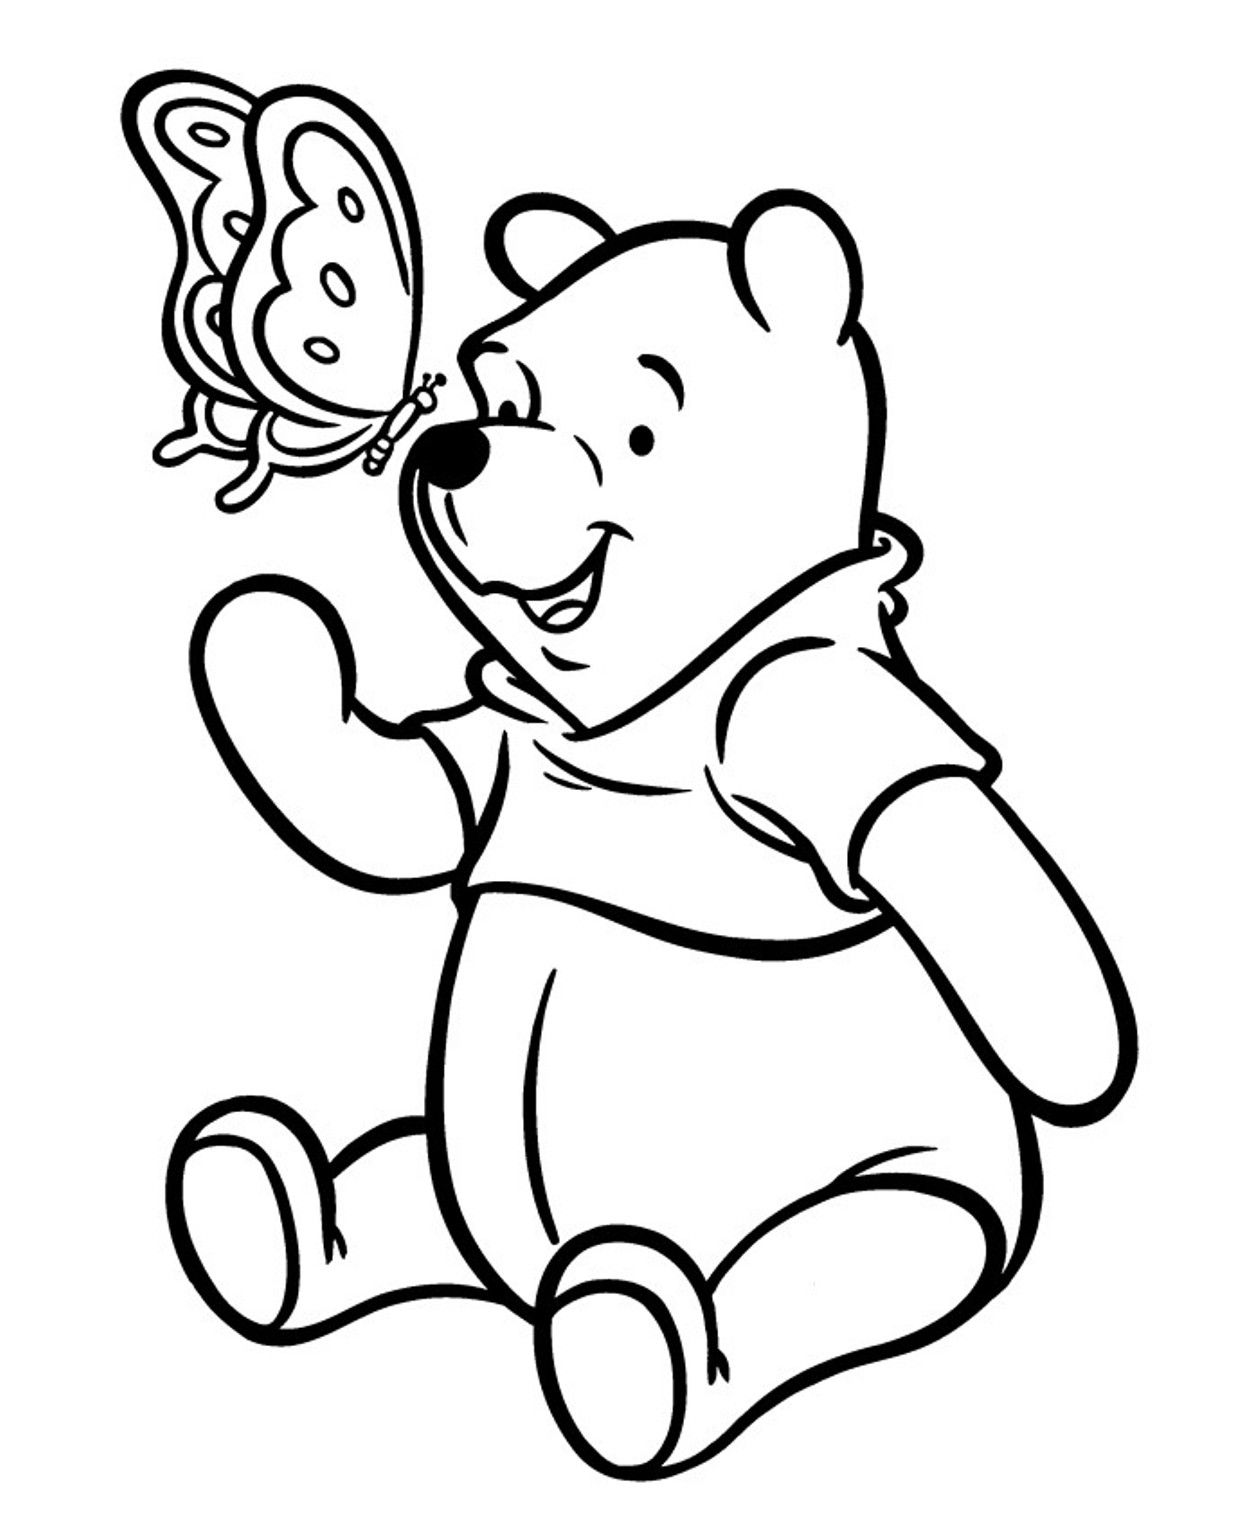 1260x1517 Lovely Classic Pooh Bear Coloring Pages Given Amazing Article